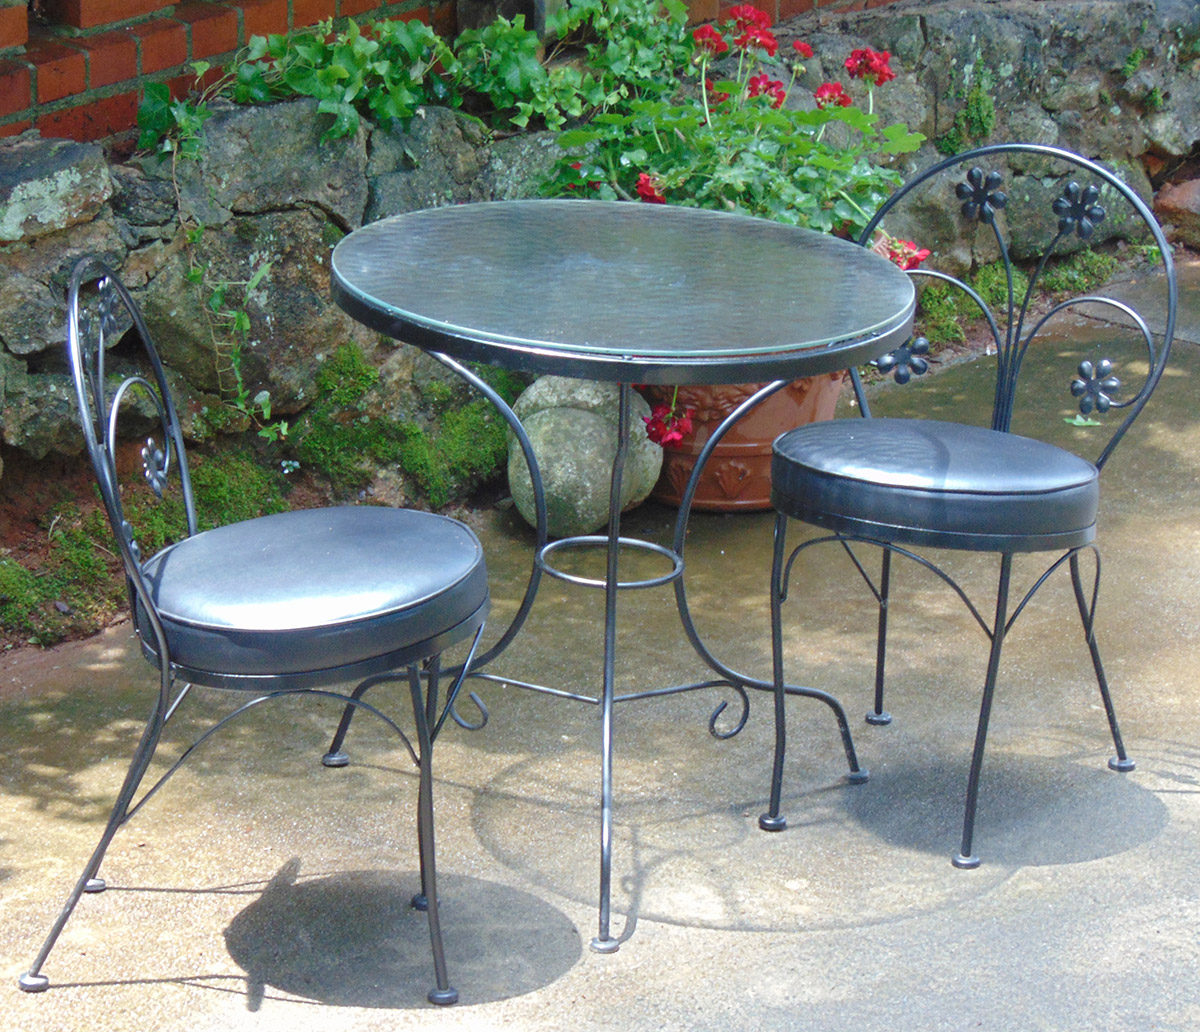 vintage wrought iron table and chairs shooting chair with rest items for sale david watkins designs